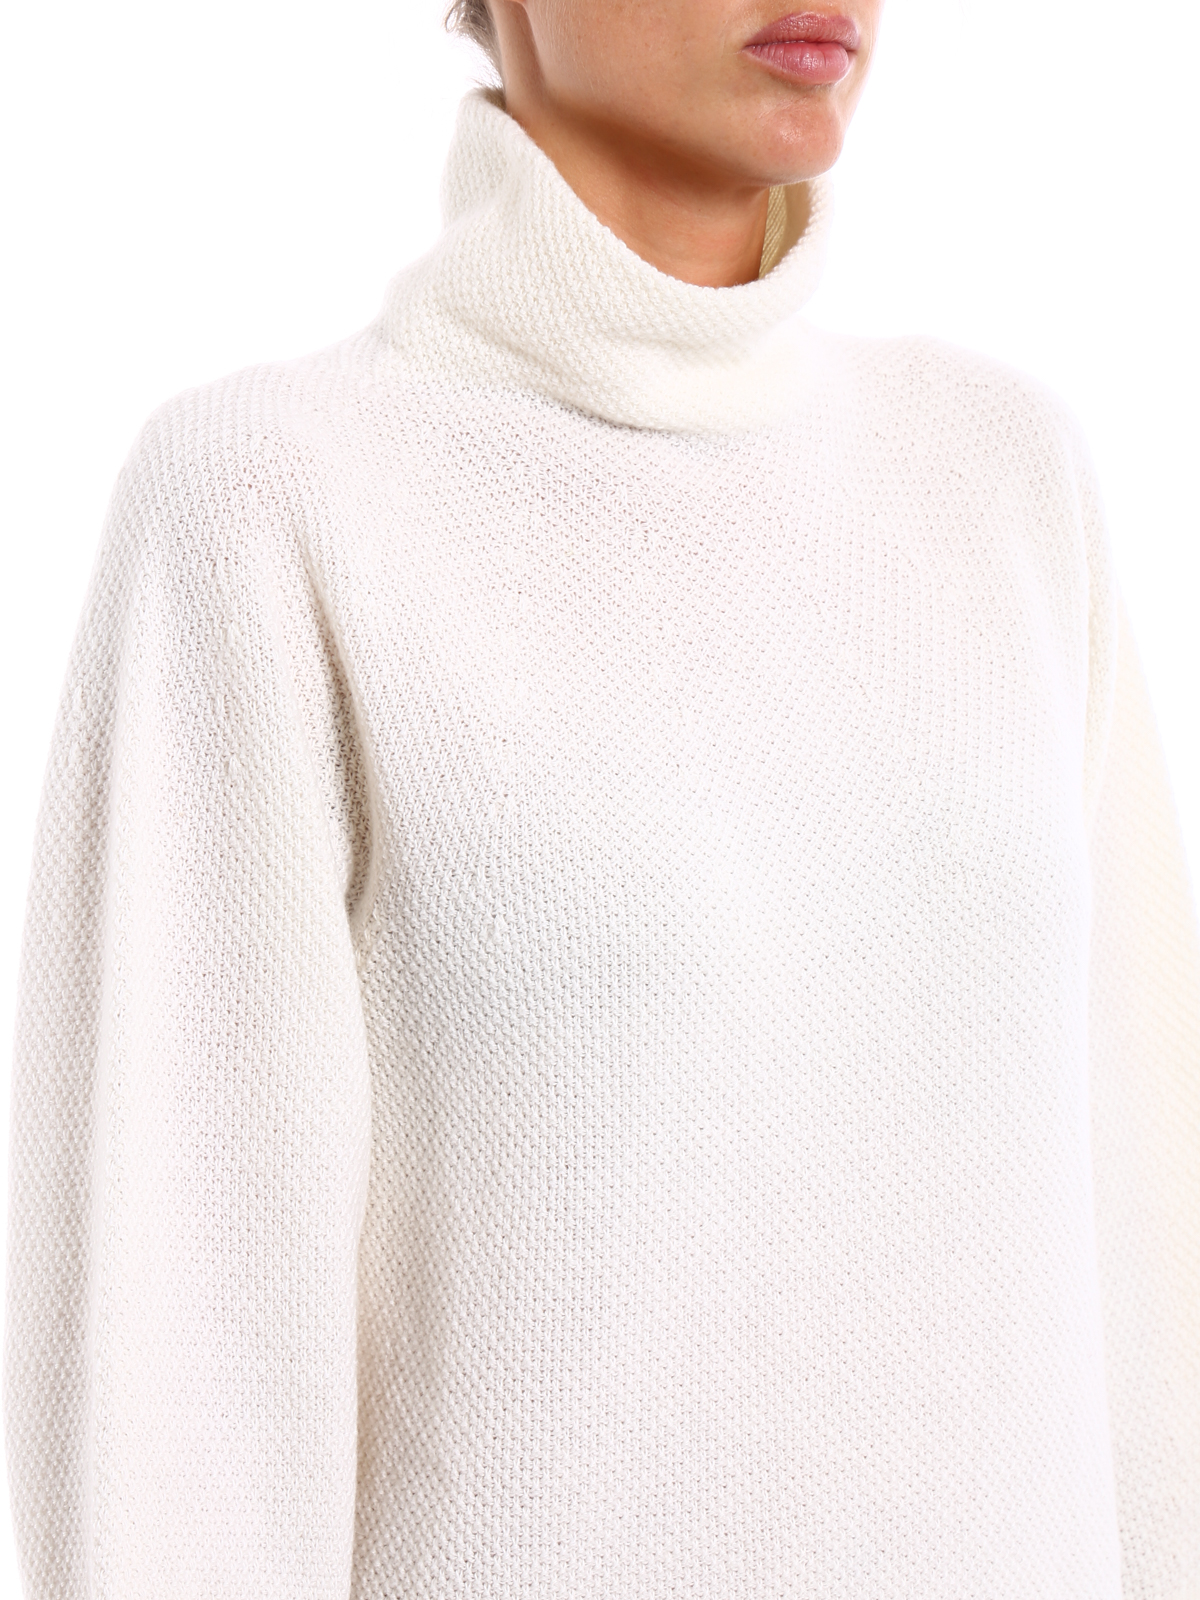 Belgio wool and cashmere sweater by Max Mara - Turtlenecks & Polo ...